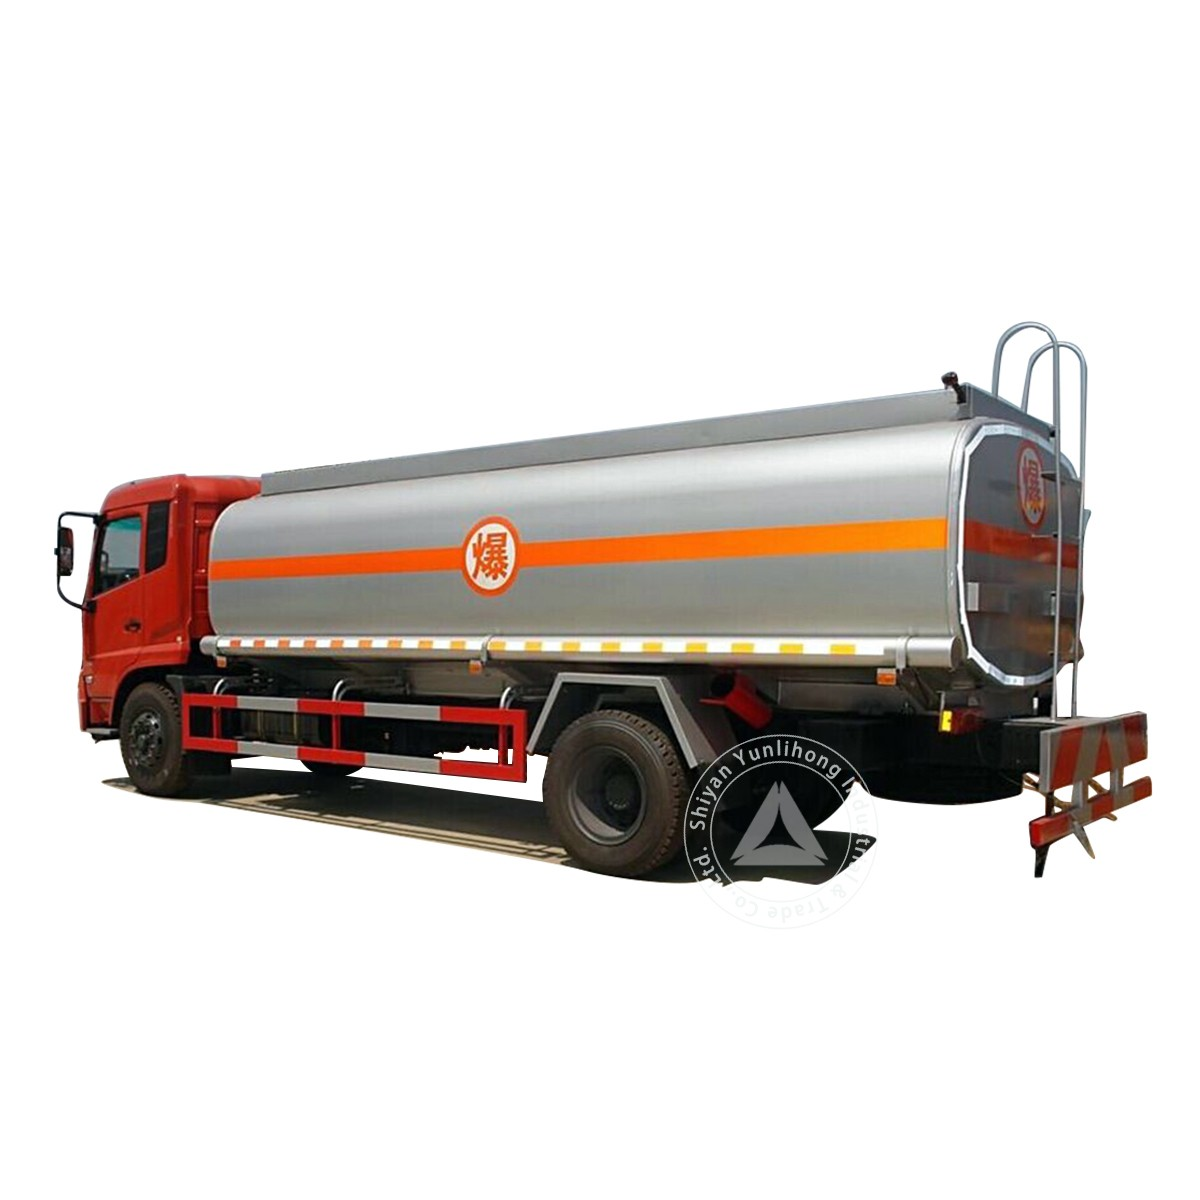 Dongfeng KR 4x2 GVW 15t Petroleum & Chemical Transport Tank Truck Manufacturers, Dongfeng KR 4x2 GVW 15t Petroleum & Chemical Transport Tank Truck Factory, Supply Dongfeng KR 4x2 GVW 15t Petroleum & Chemical Transport Tank Truck